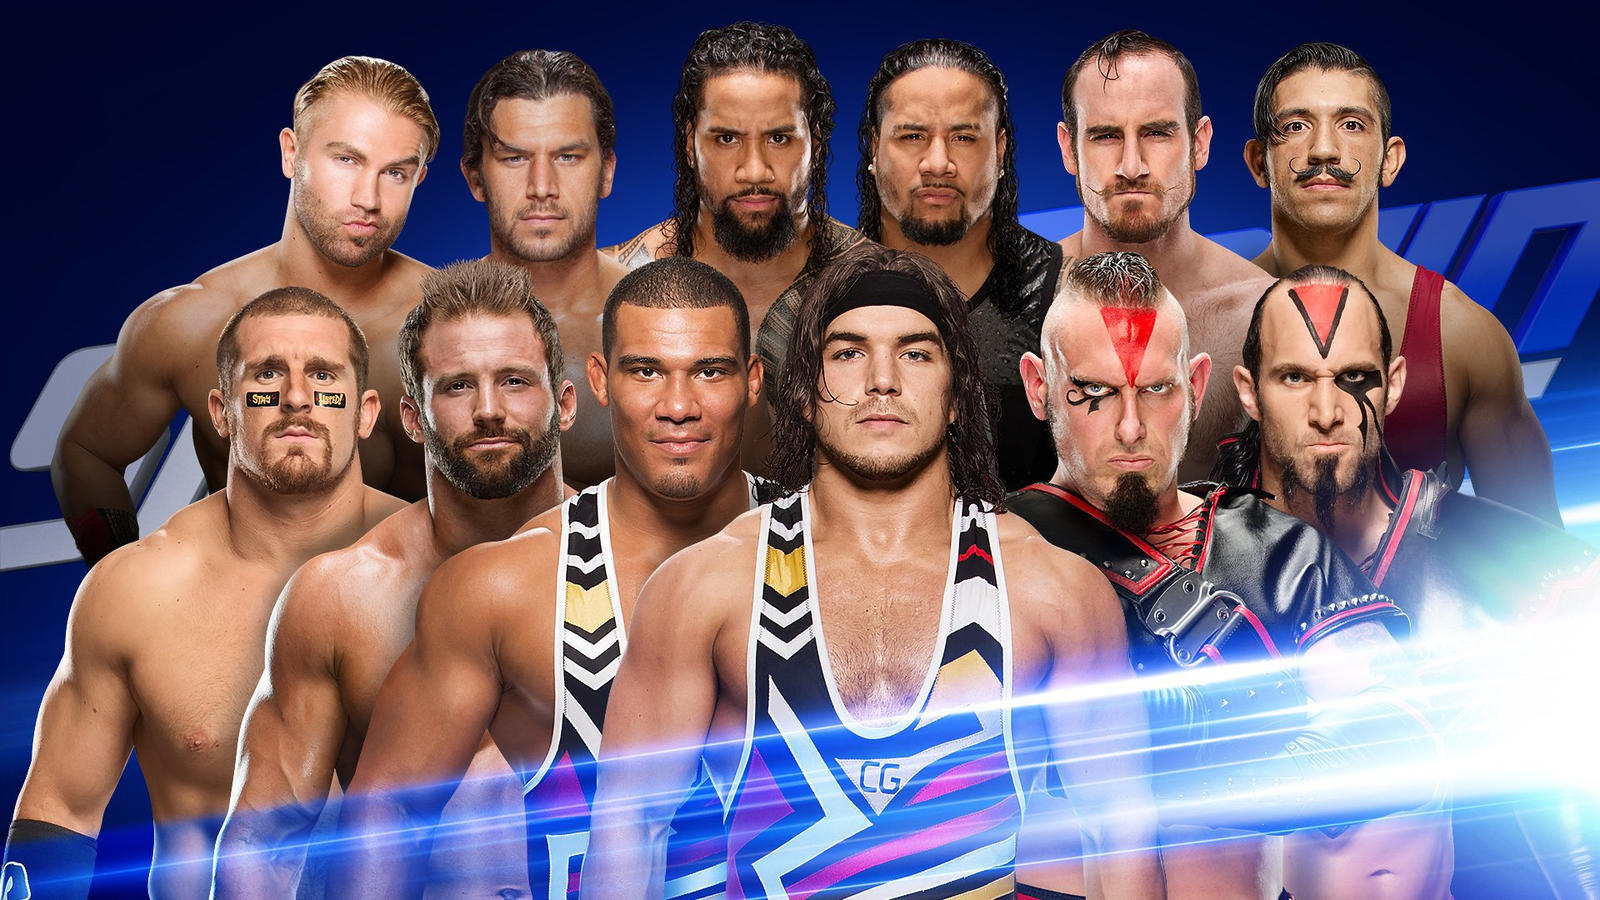 Image Result For Wwe Smackdown Live